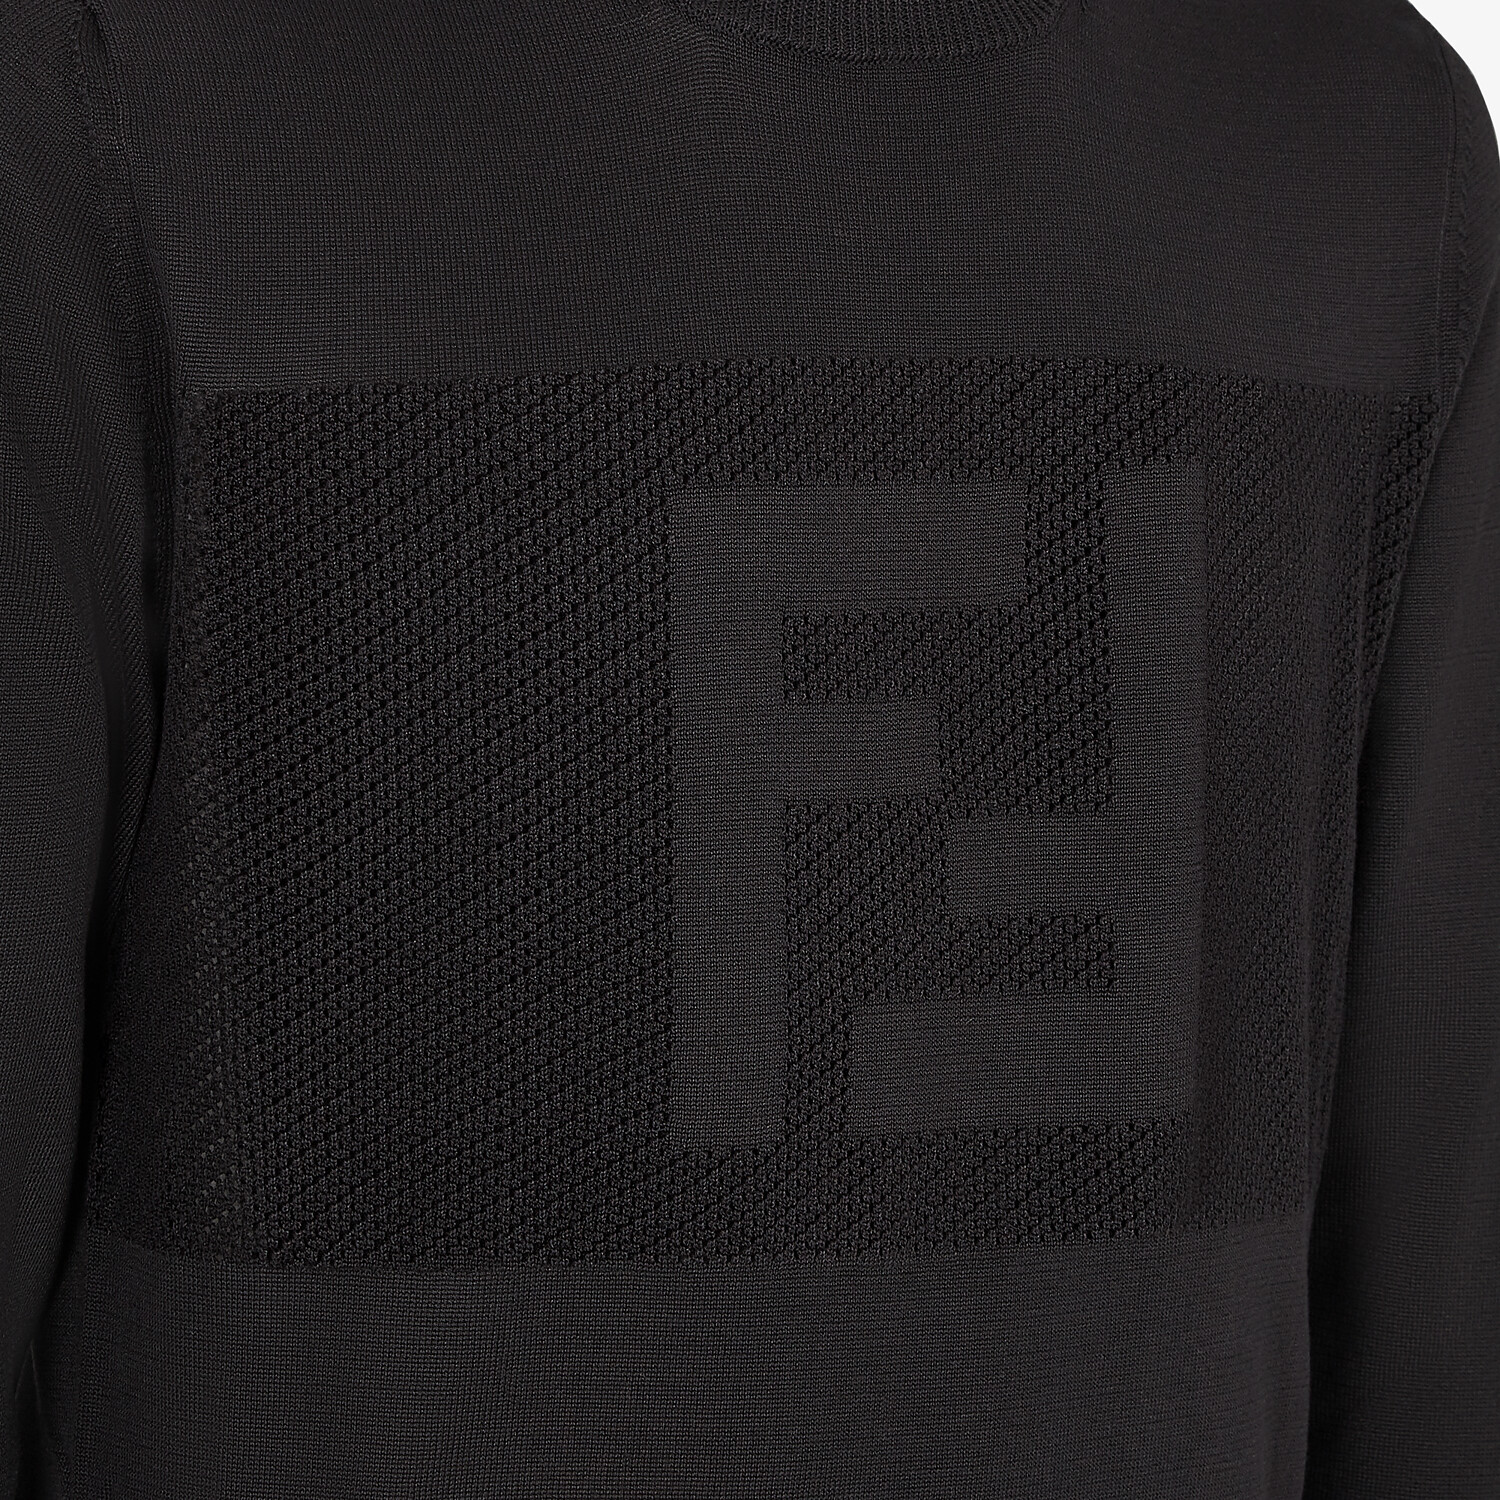 FENDI SWEATER - Black cotton sweater - view 3 detail